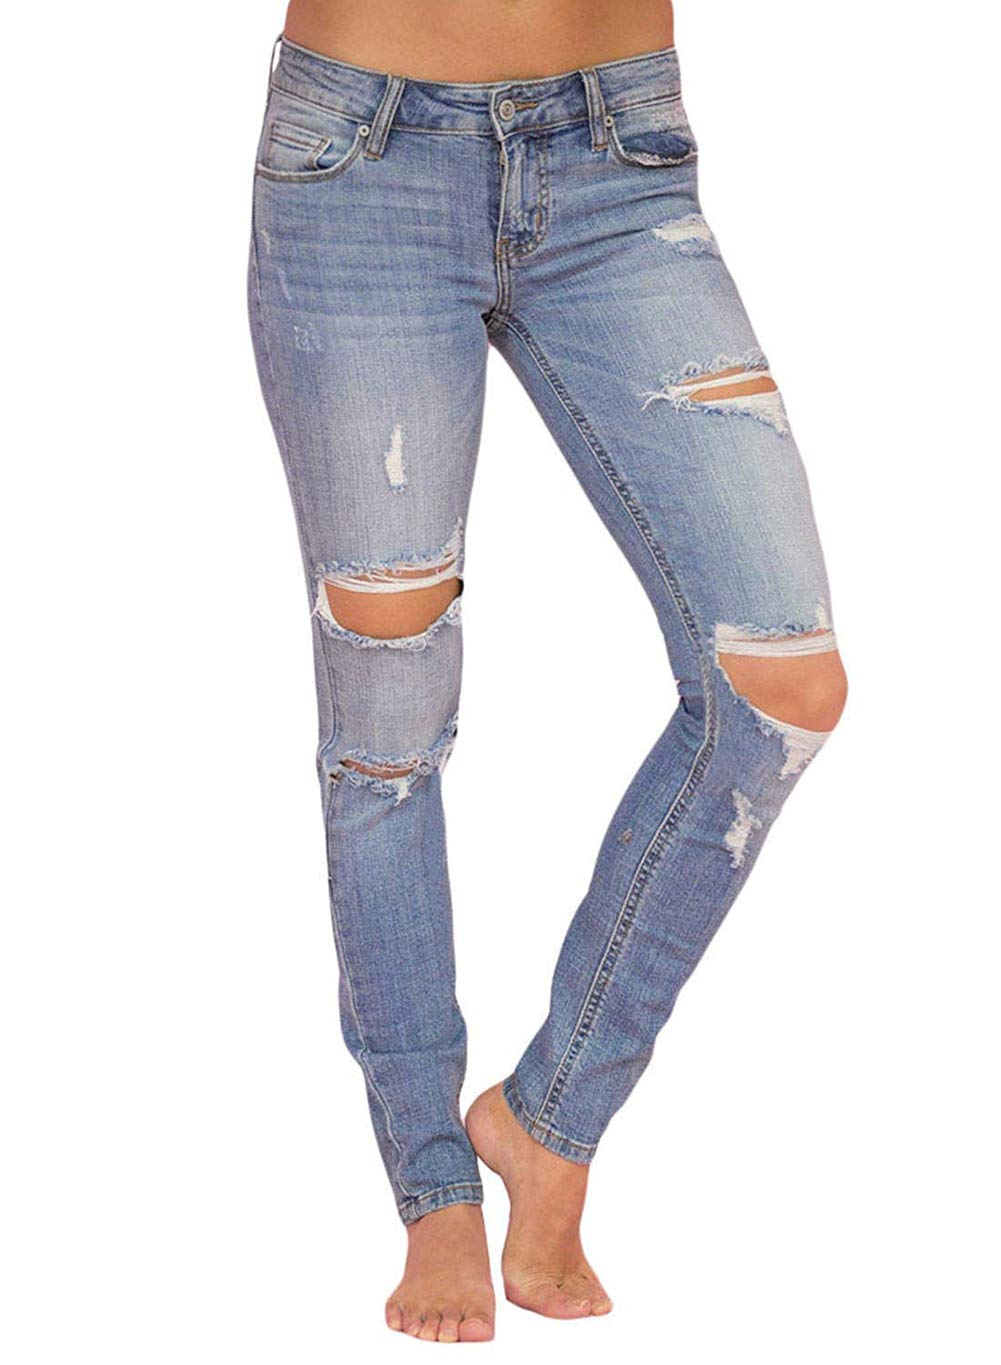 Shawhuwa Womens High Waisted Slim Fit Stretch Ripped Hole Skinny Wash Blue Jeans Distressed Petite Denim Pants